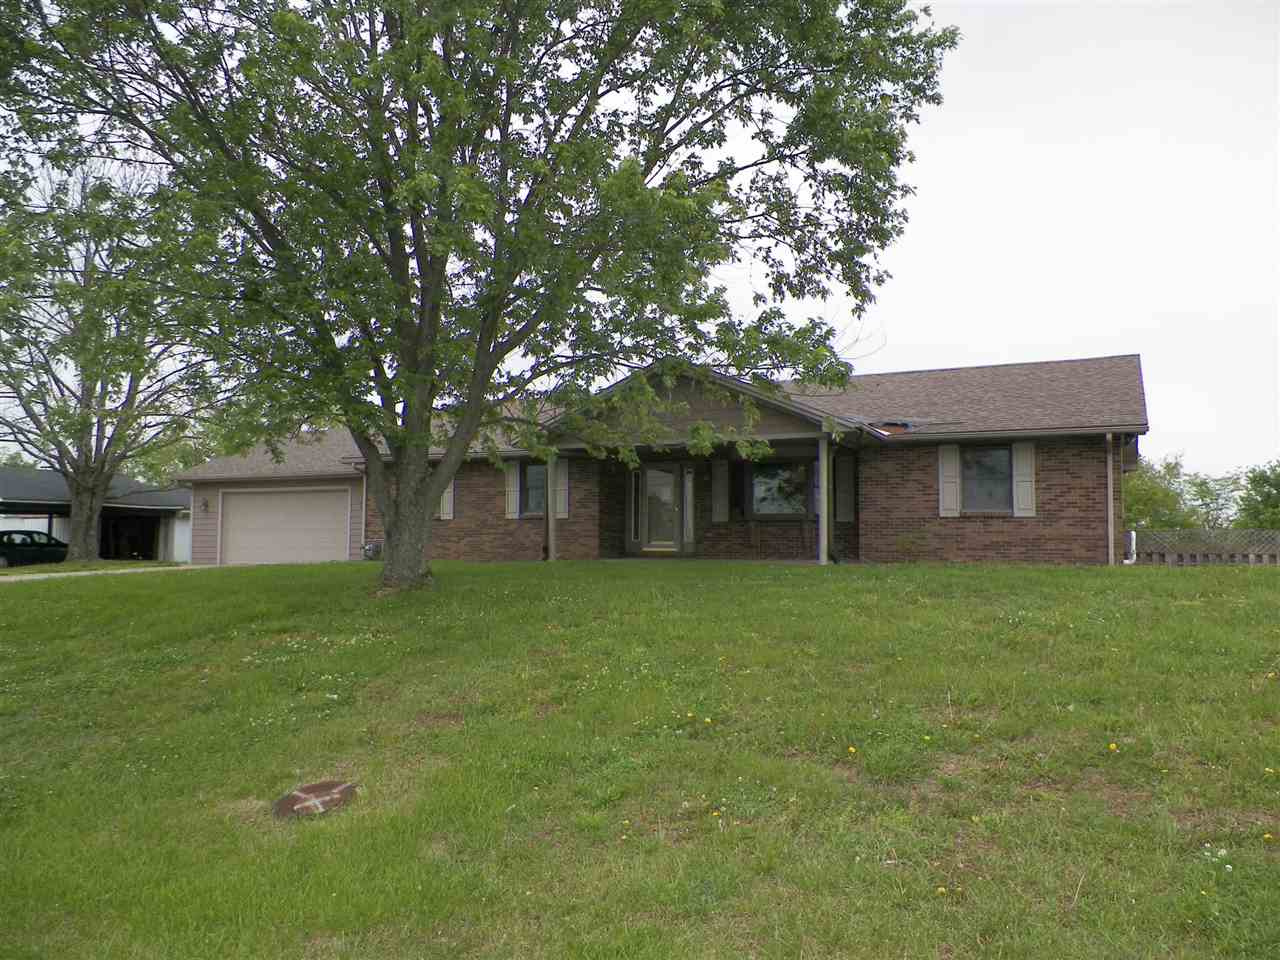 Photo 1 for 530 Cynthiana St Williamstown, KY 41097